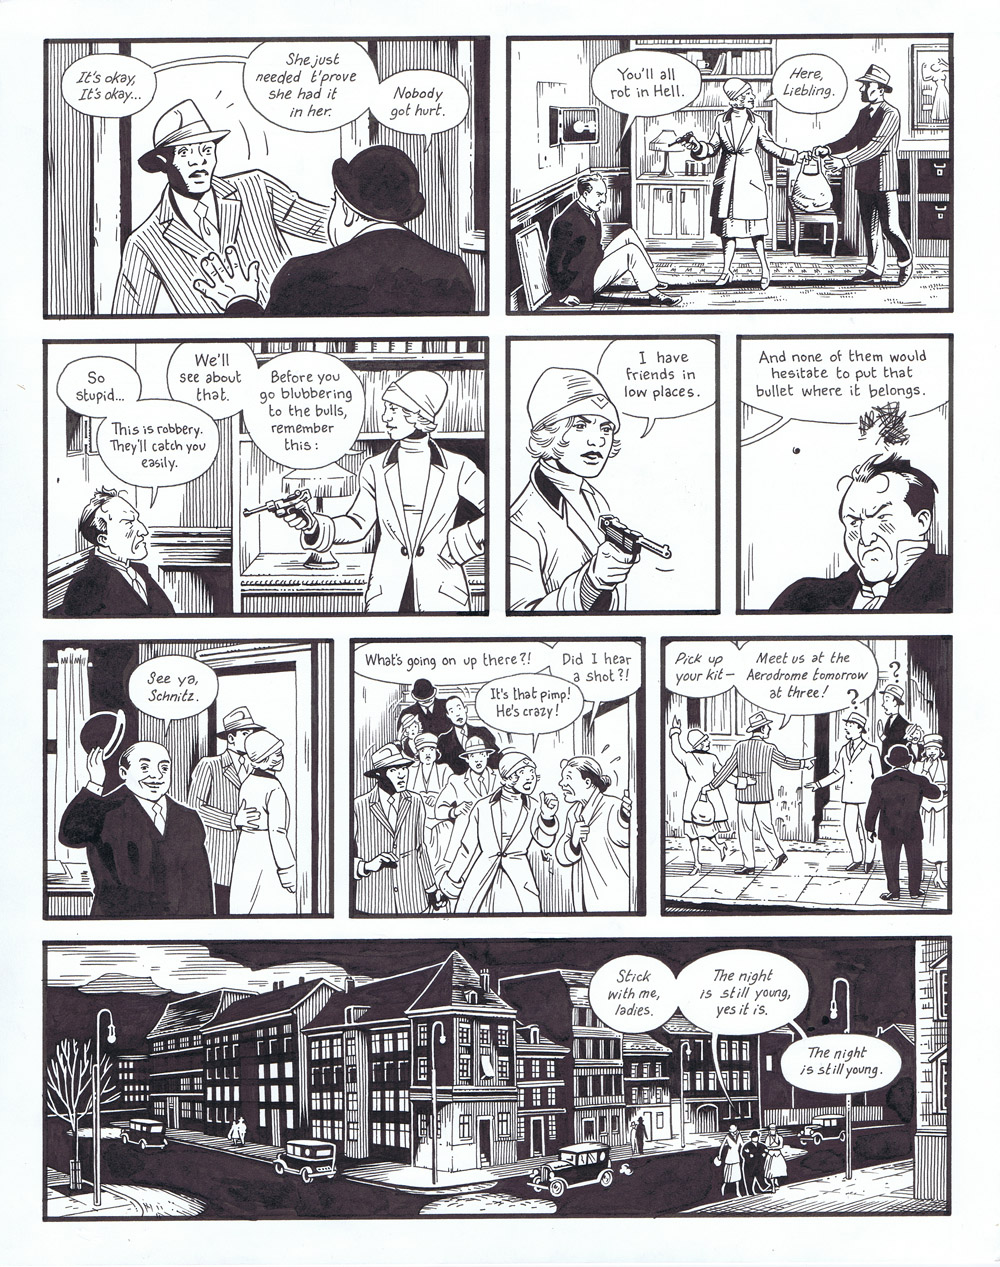 Berlin: Book 2 - page 203